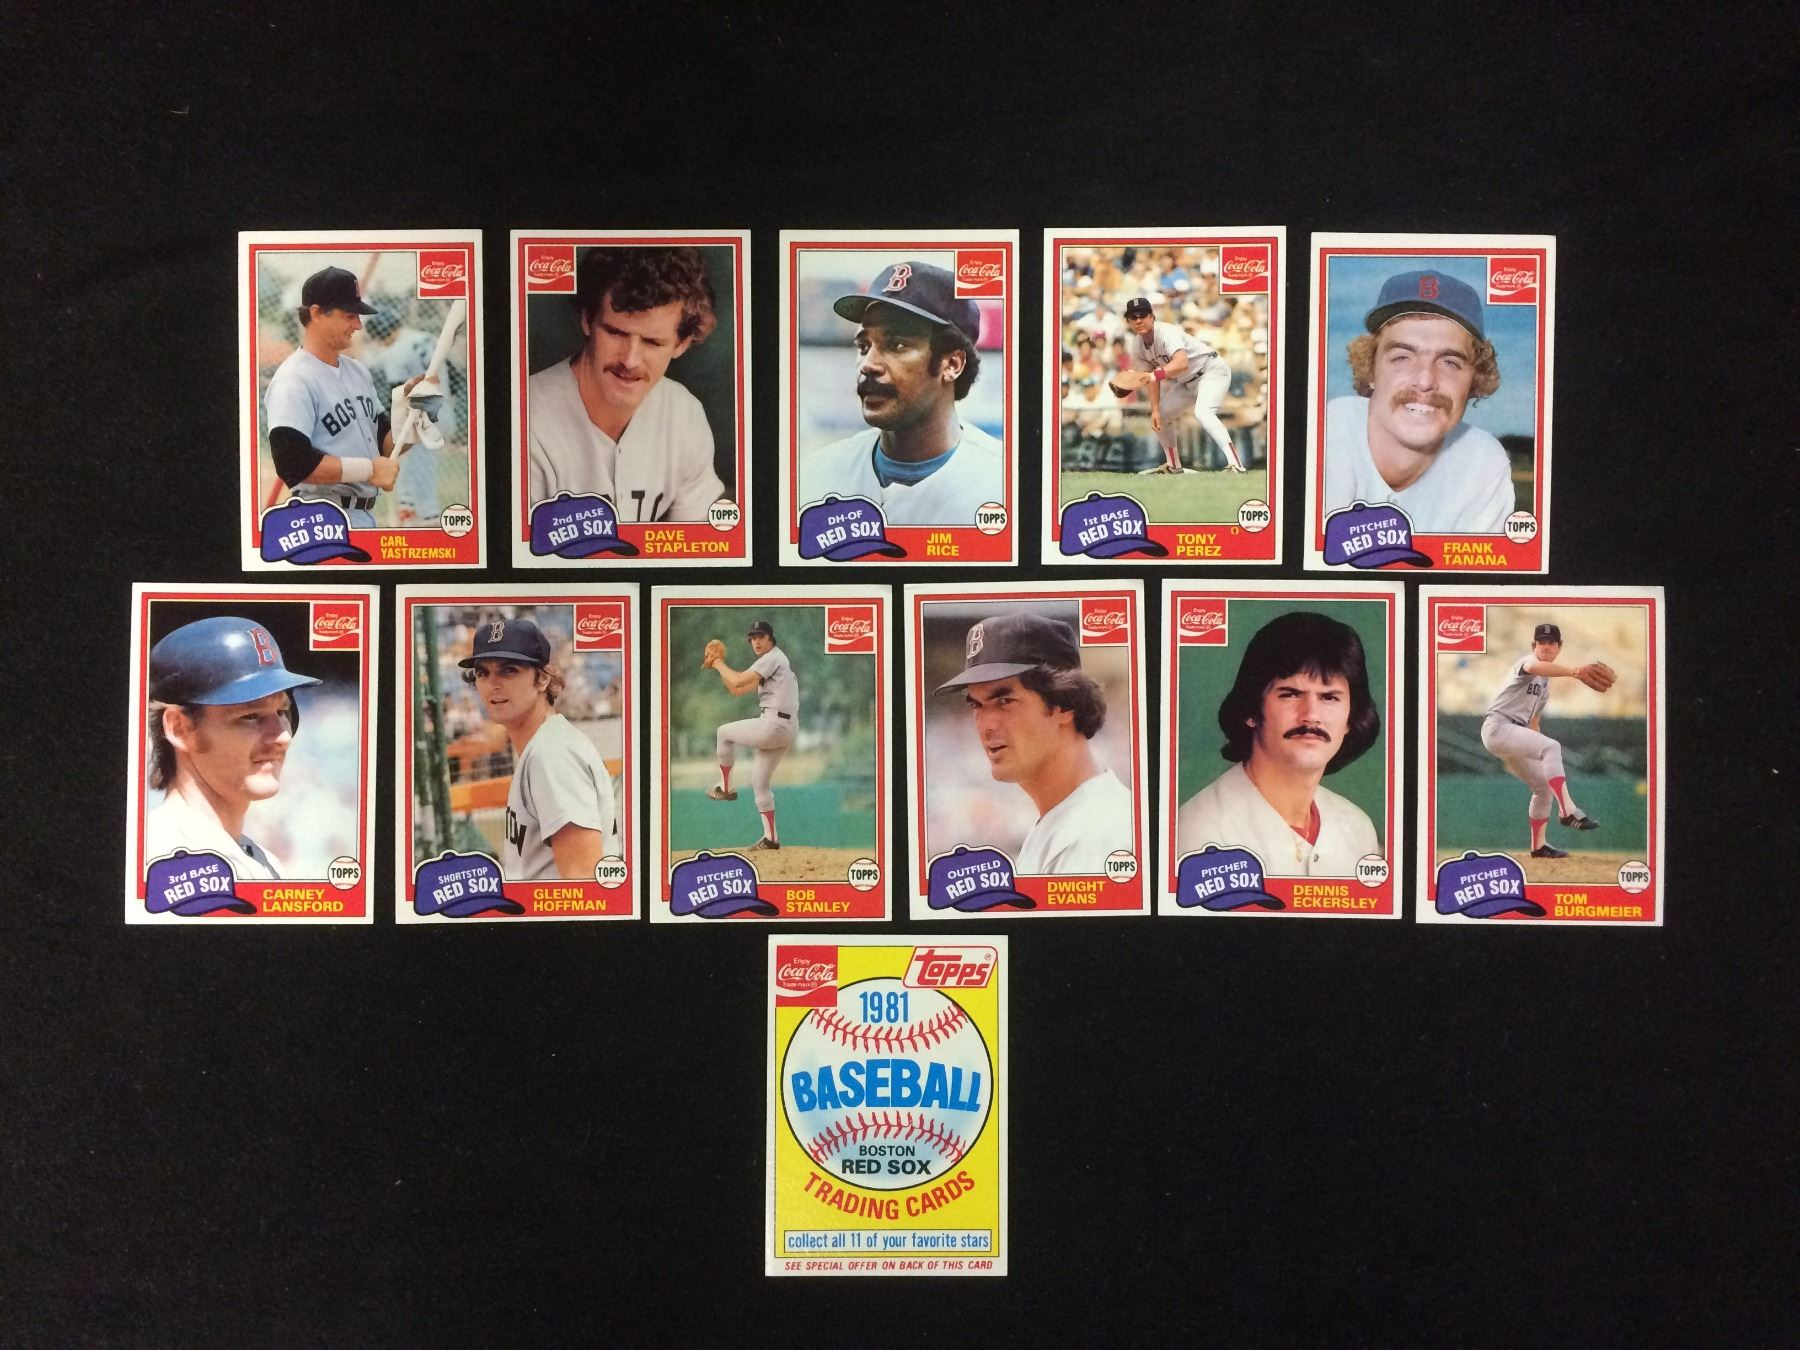 1981 Topps Coca Cola Baseball Trading Cards Lot